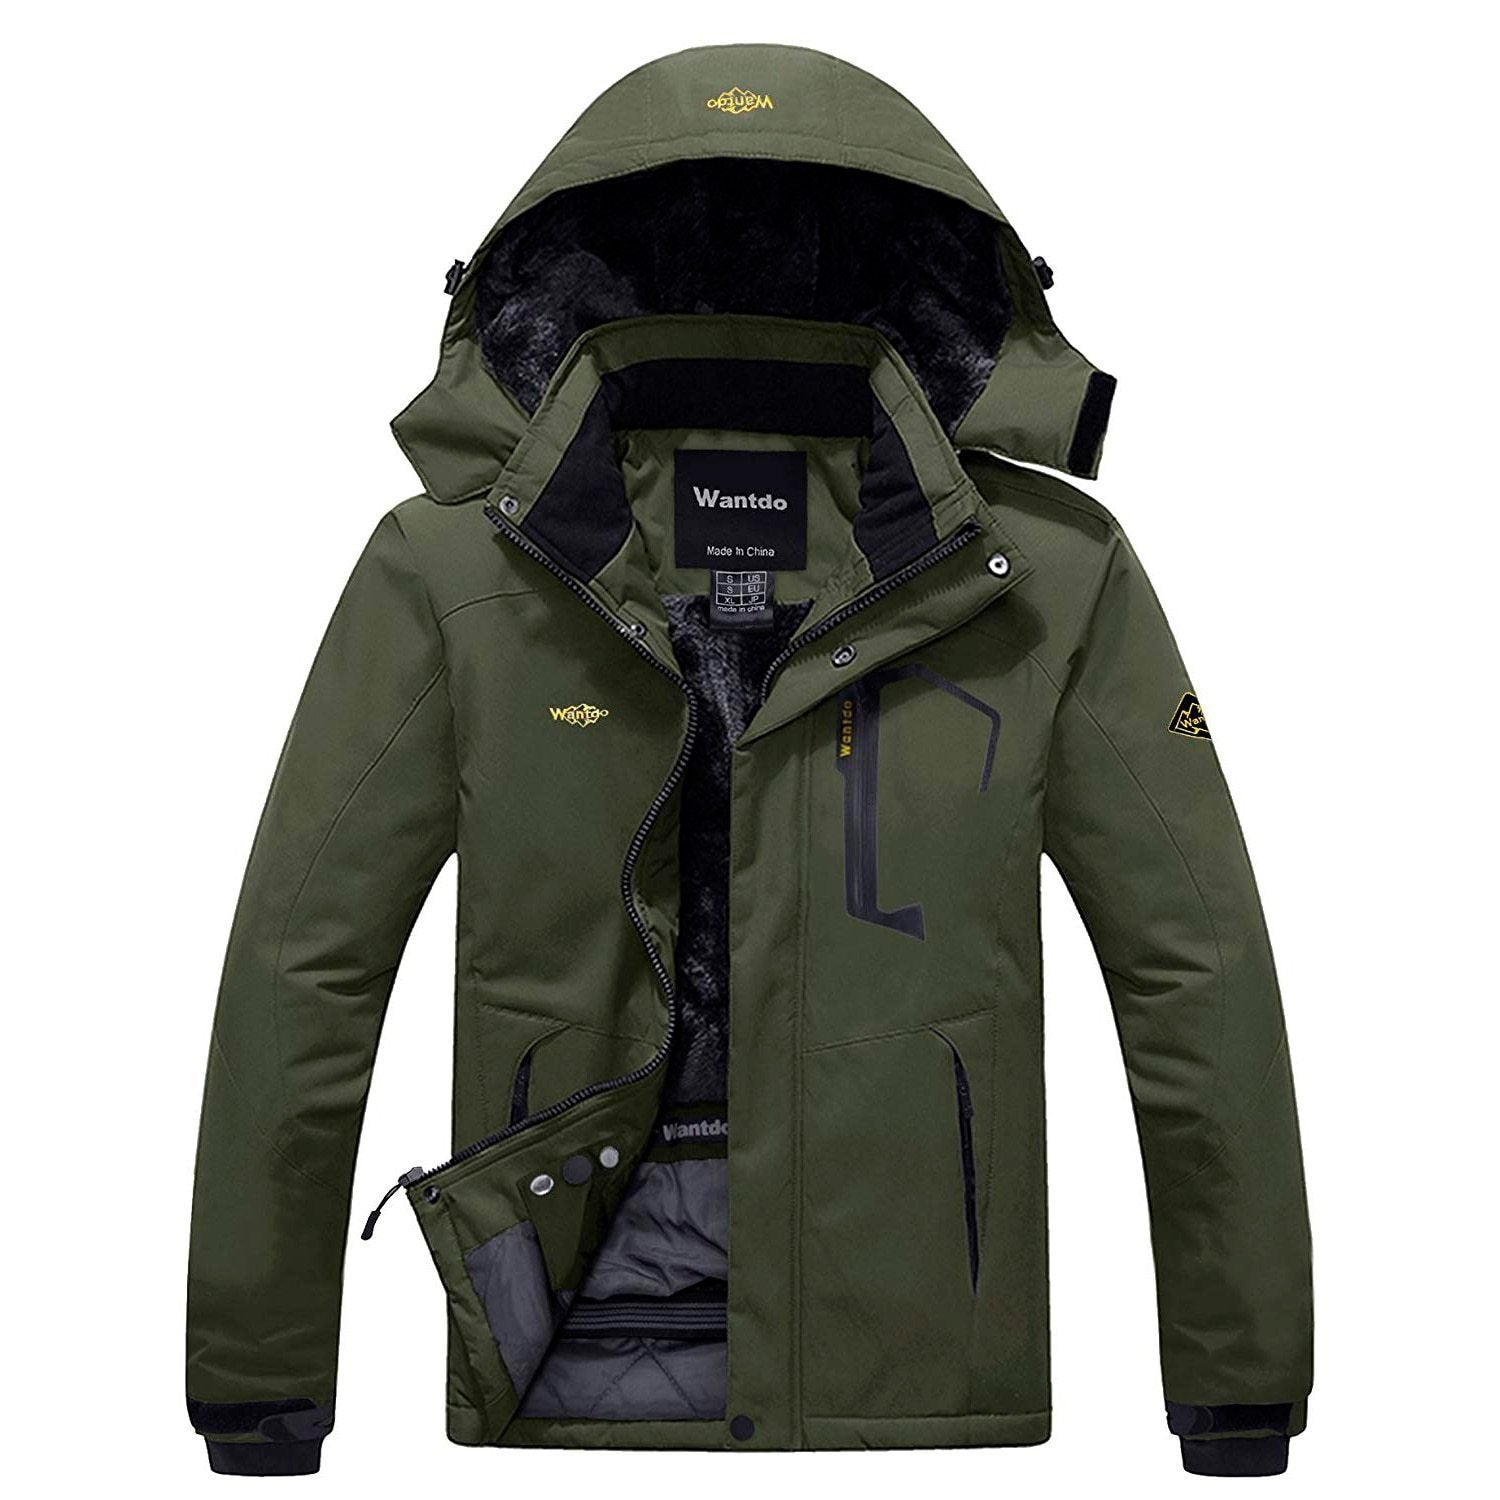 Wantdo Men's Warm Fleece Lined Waterproof Winter Ski Parka with Detachable Hood